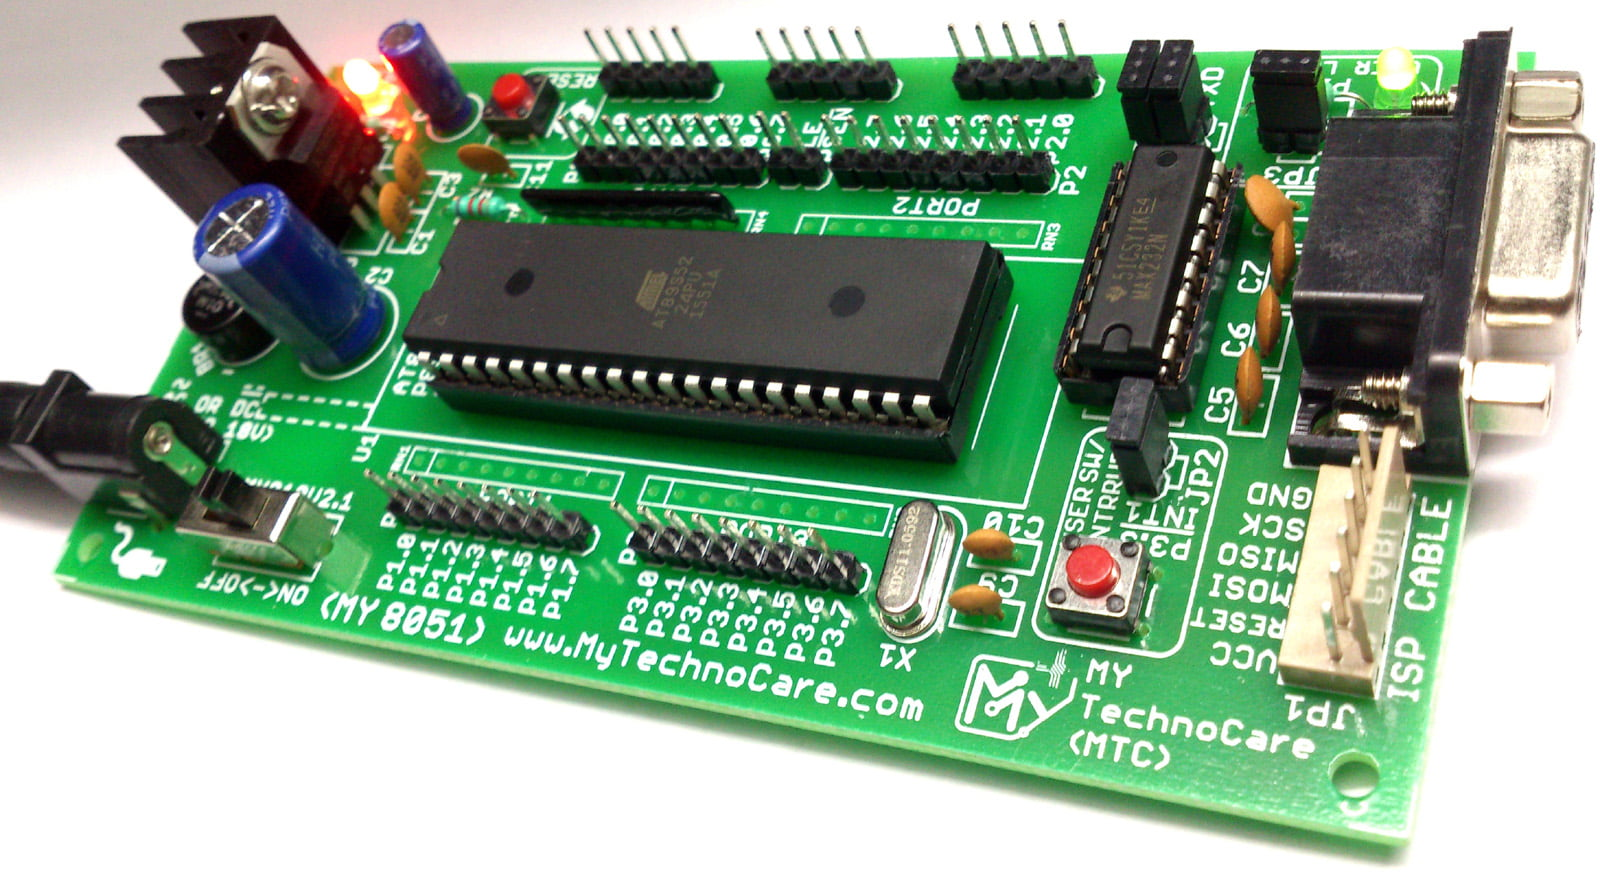 buy atmel 8051 microcontroller project low cost development board with max232 at89s52 ic support at89s51 [ 1600 x 881 Pixel ]